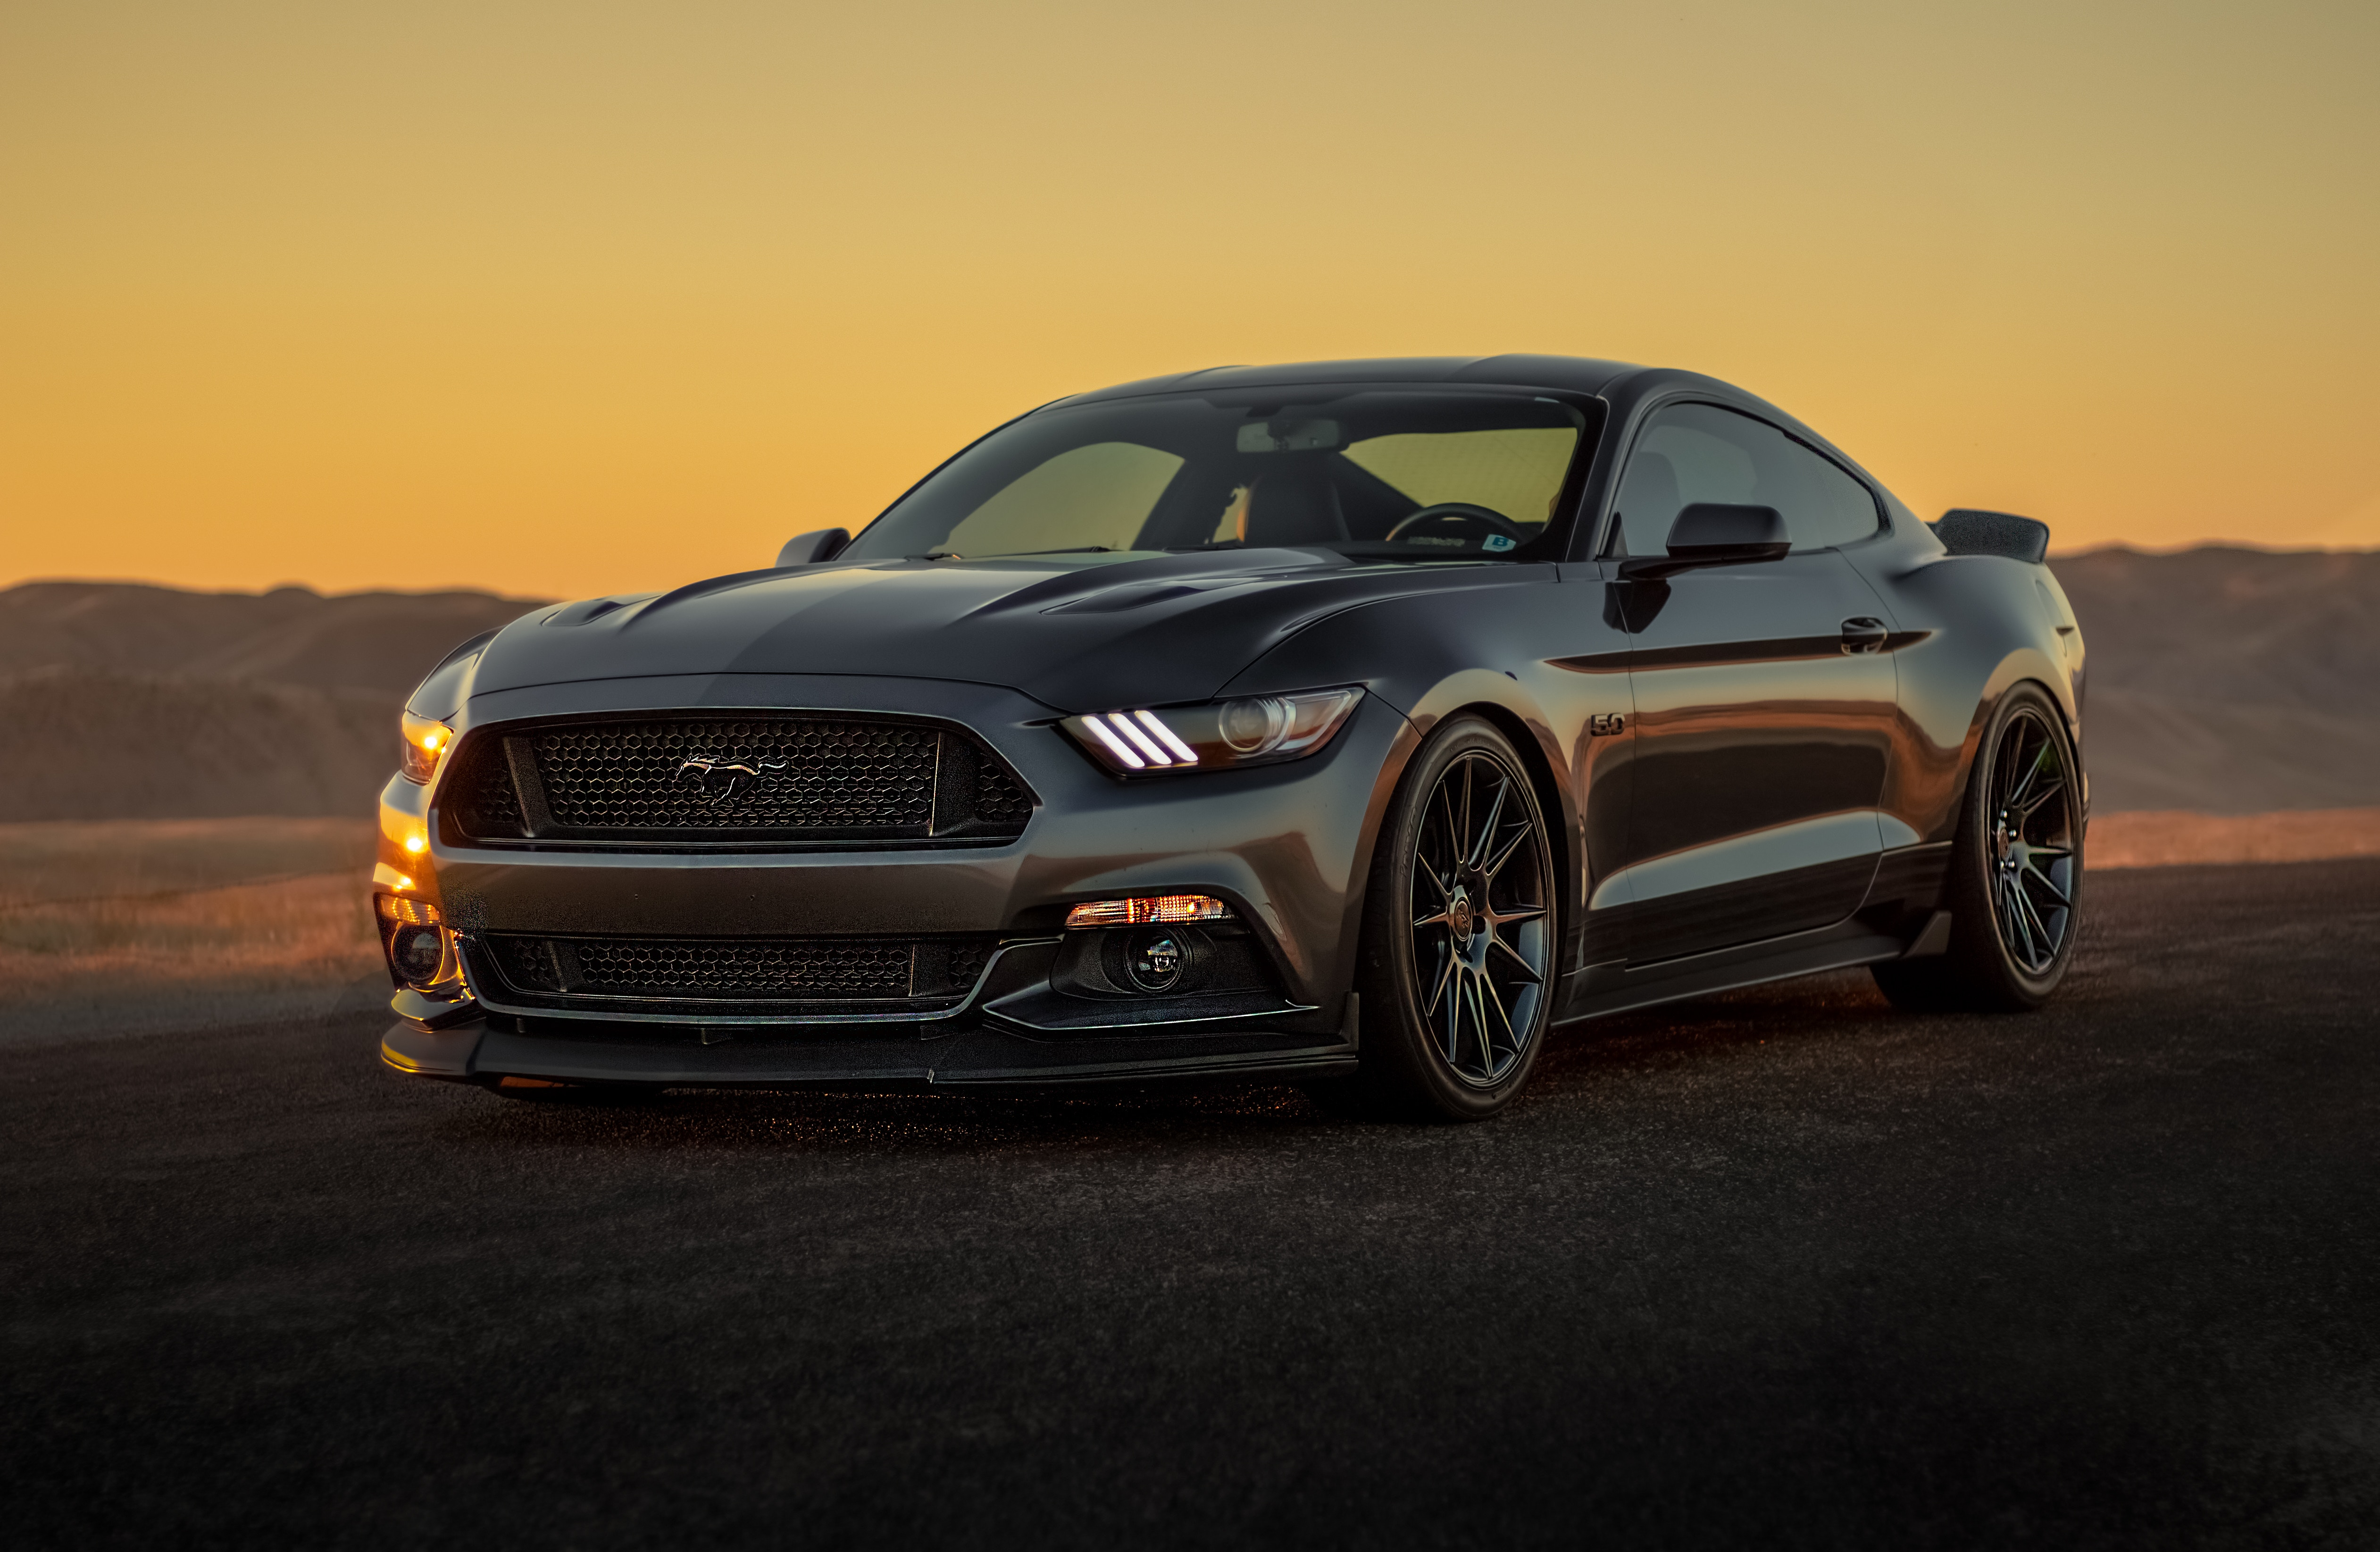 Car Wallpaper Hd 1080p Free Download For Mobile Black Ford Mustang 2019 5k Hd Cars 4k Wallpapers Images